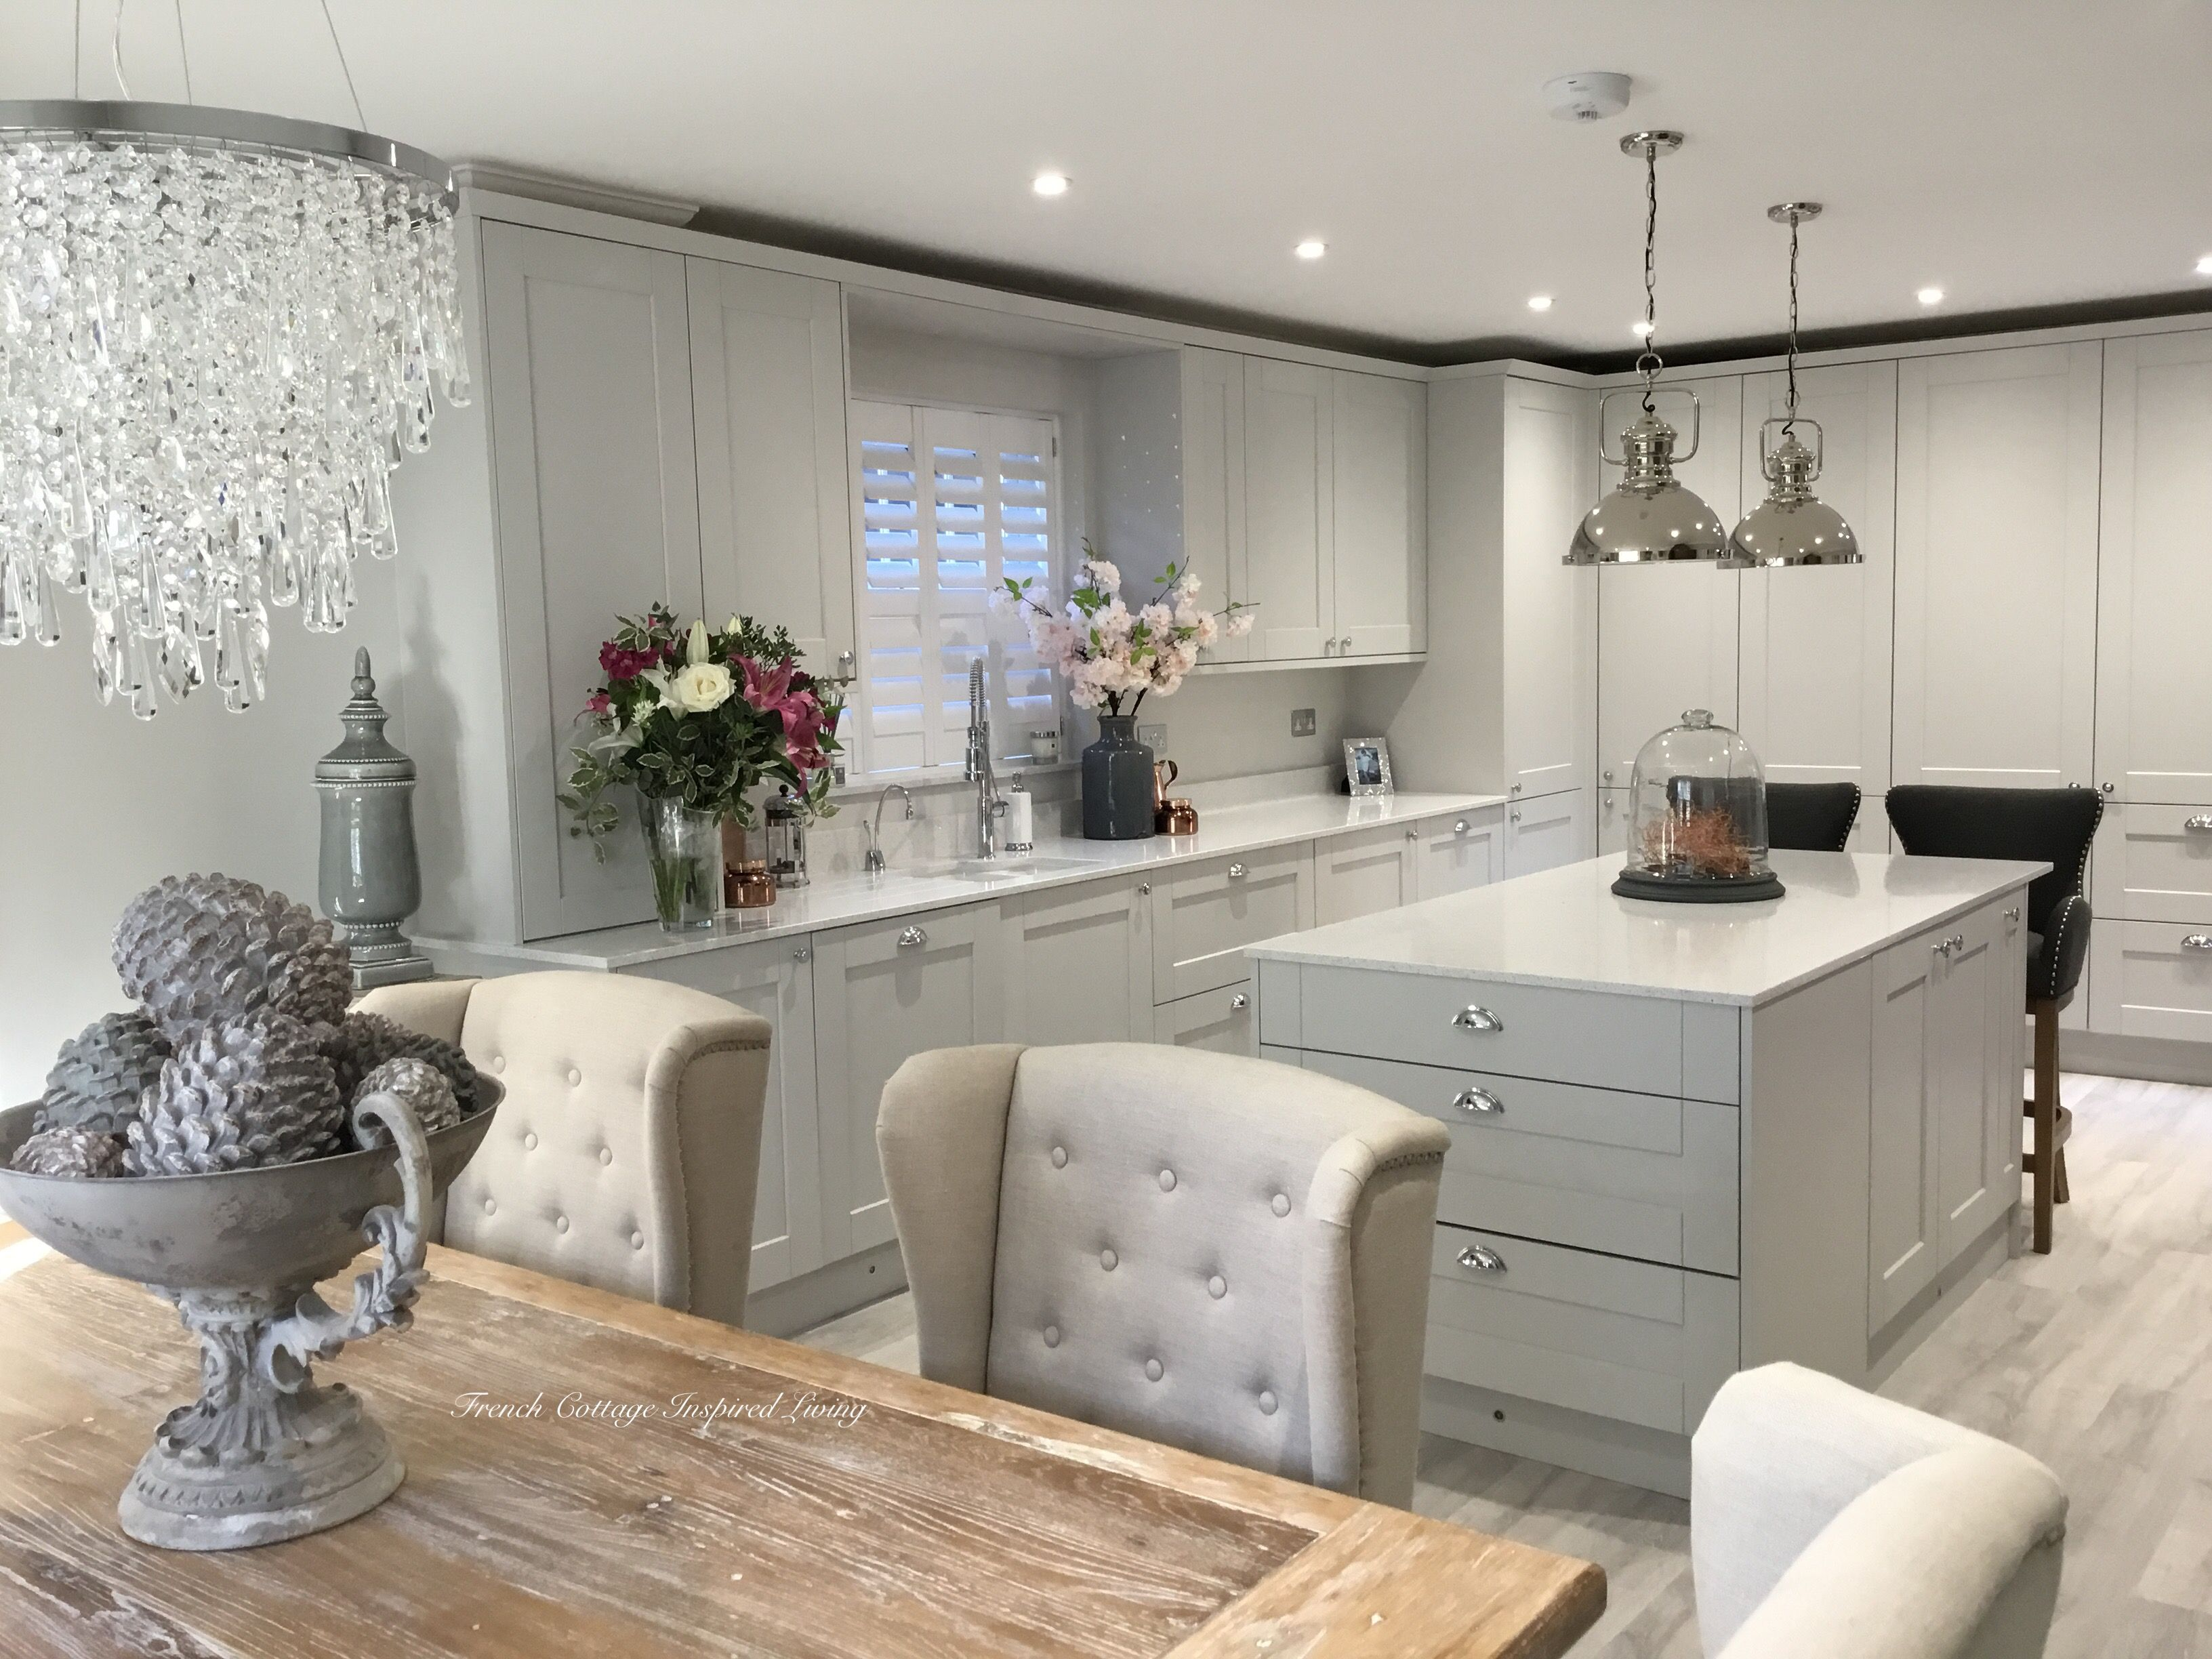 Howdens kitchen selecting extra high cupboards and white